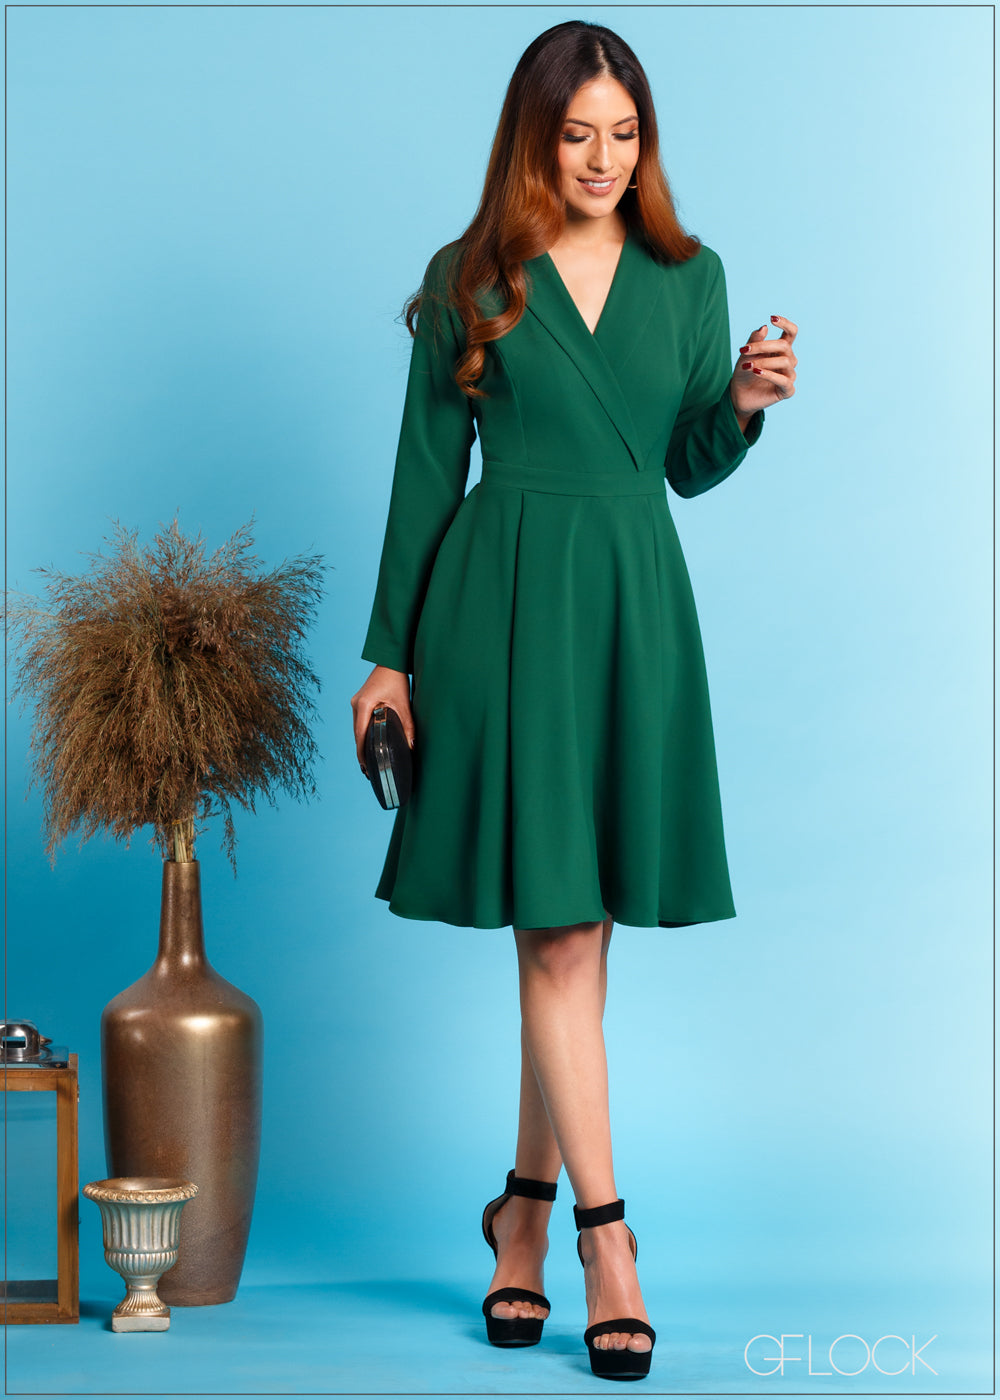 Lapel Collared Dress with Long Sleeves - Eve 312